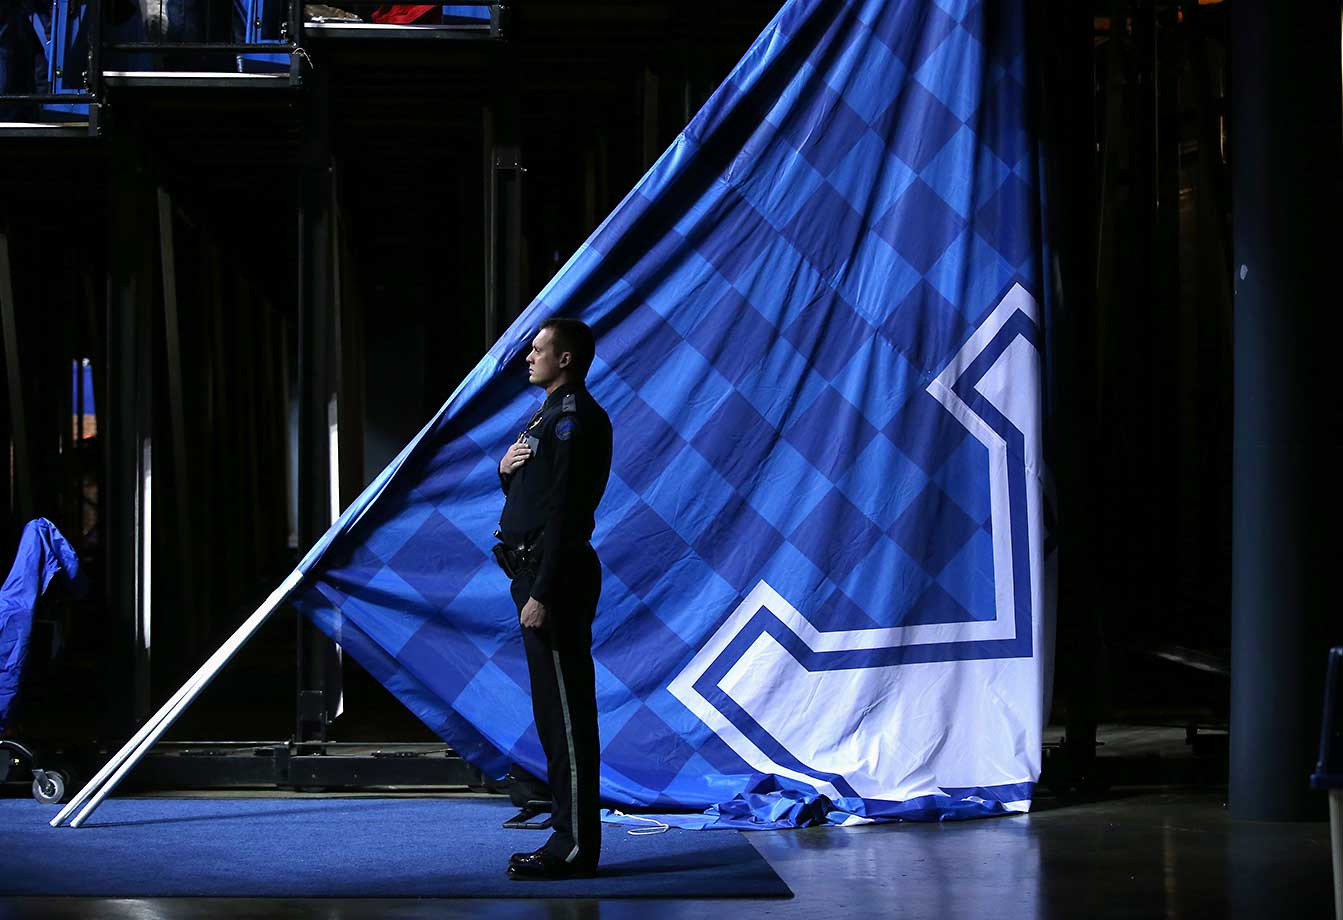 A police officer observes the national anthem before the Kentucky Wildcats game against the Georgia Bulldogs at Rupp Arena.